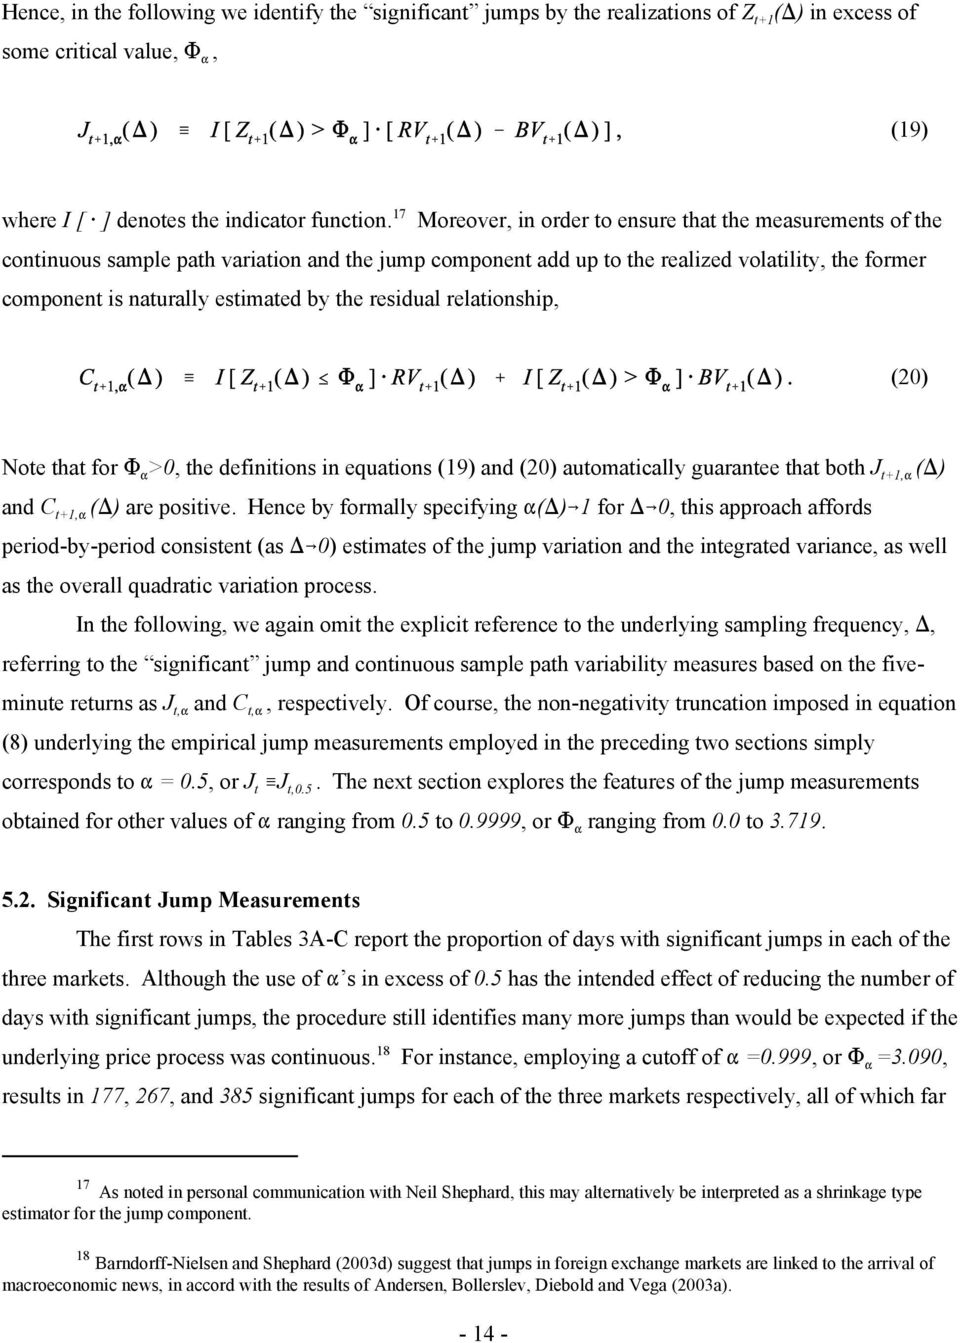 "the residual relationship, (20) Note that for M "" >0, the definitions in equations (19) and (20) automatically guarantee that both J t+1,"" ()) and C t+1,"" ()) are positive."